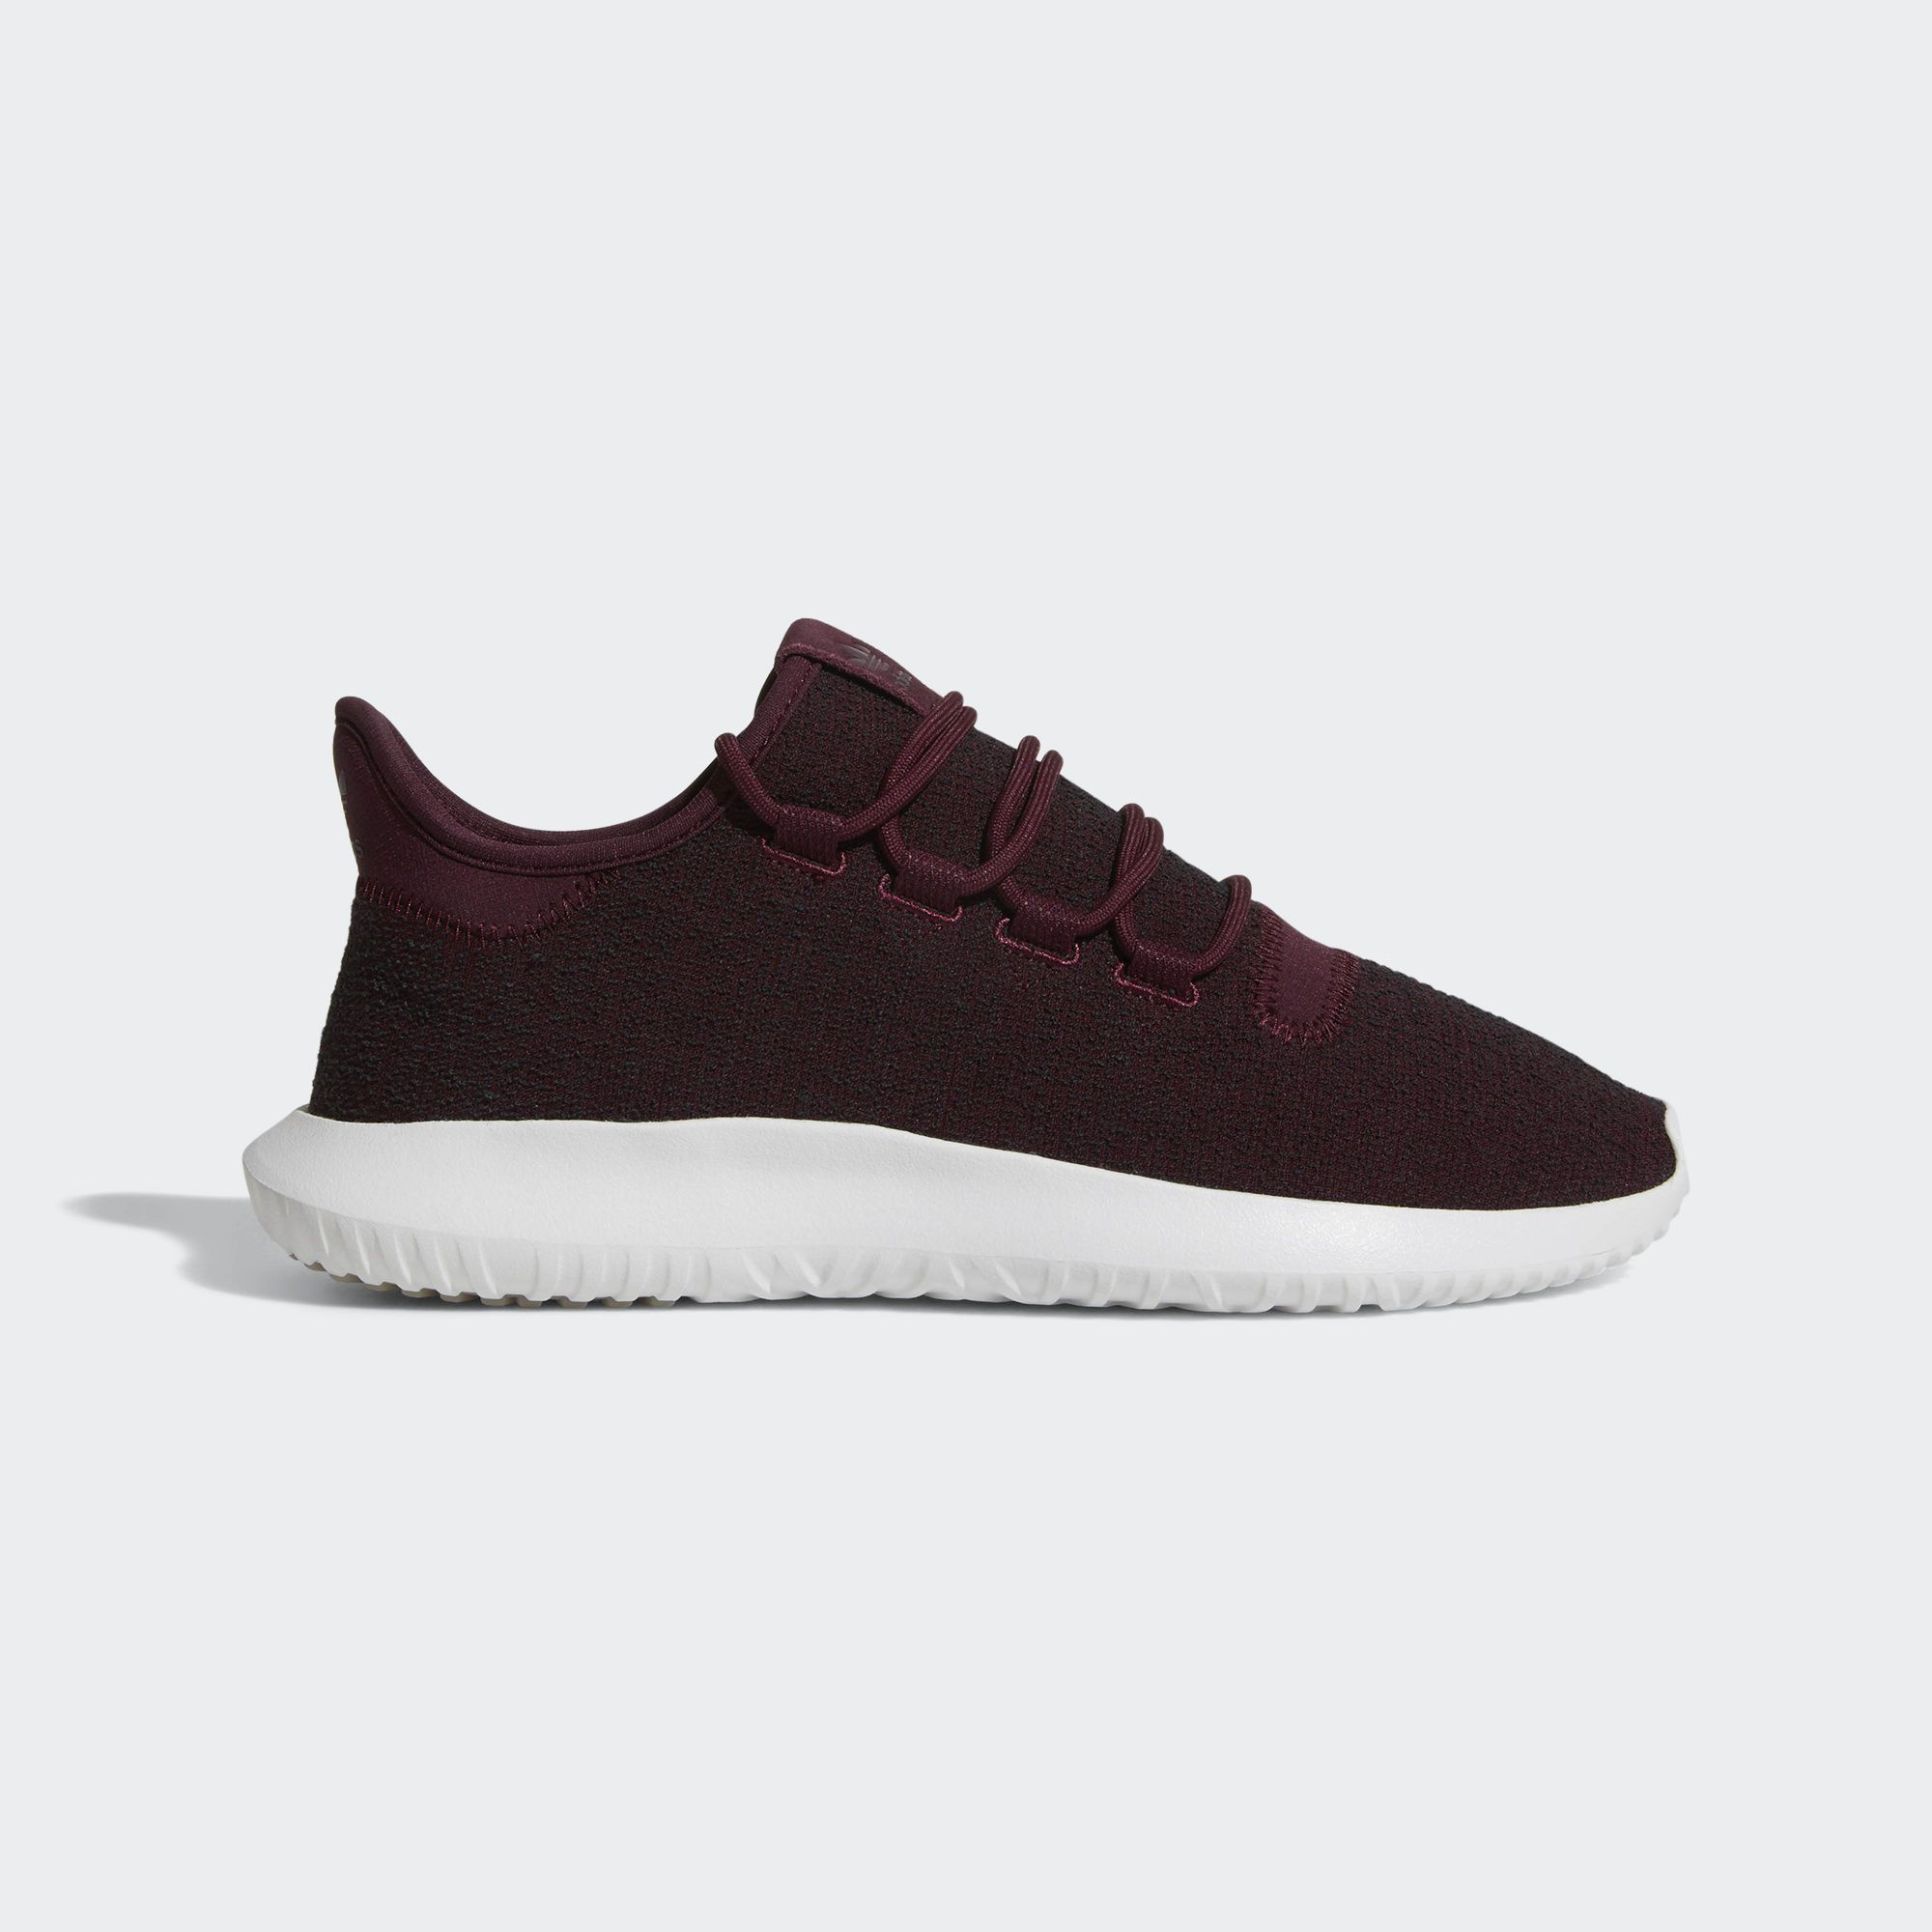 size 40 04a52 29792 Details about adidas Tubular Shadow Shoes Men's   IMPORTANT ...